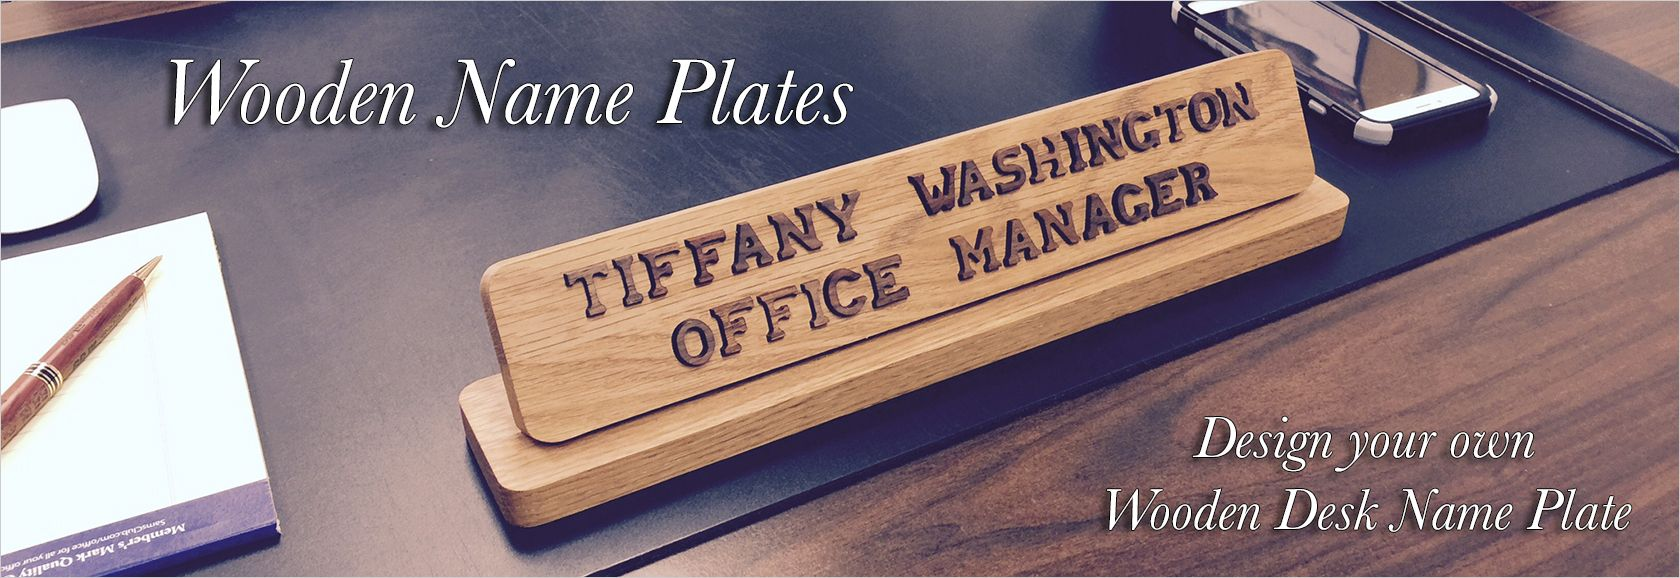 New Name plates to make any office unique. Desk, door or wall name plates. JV71